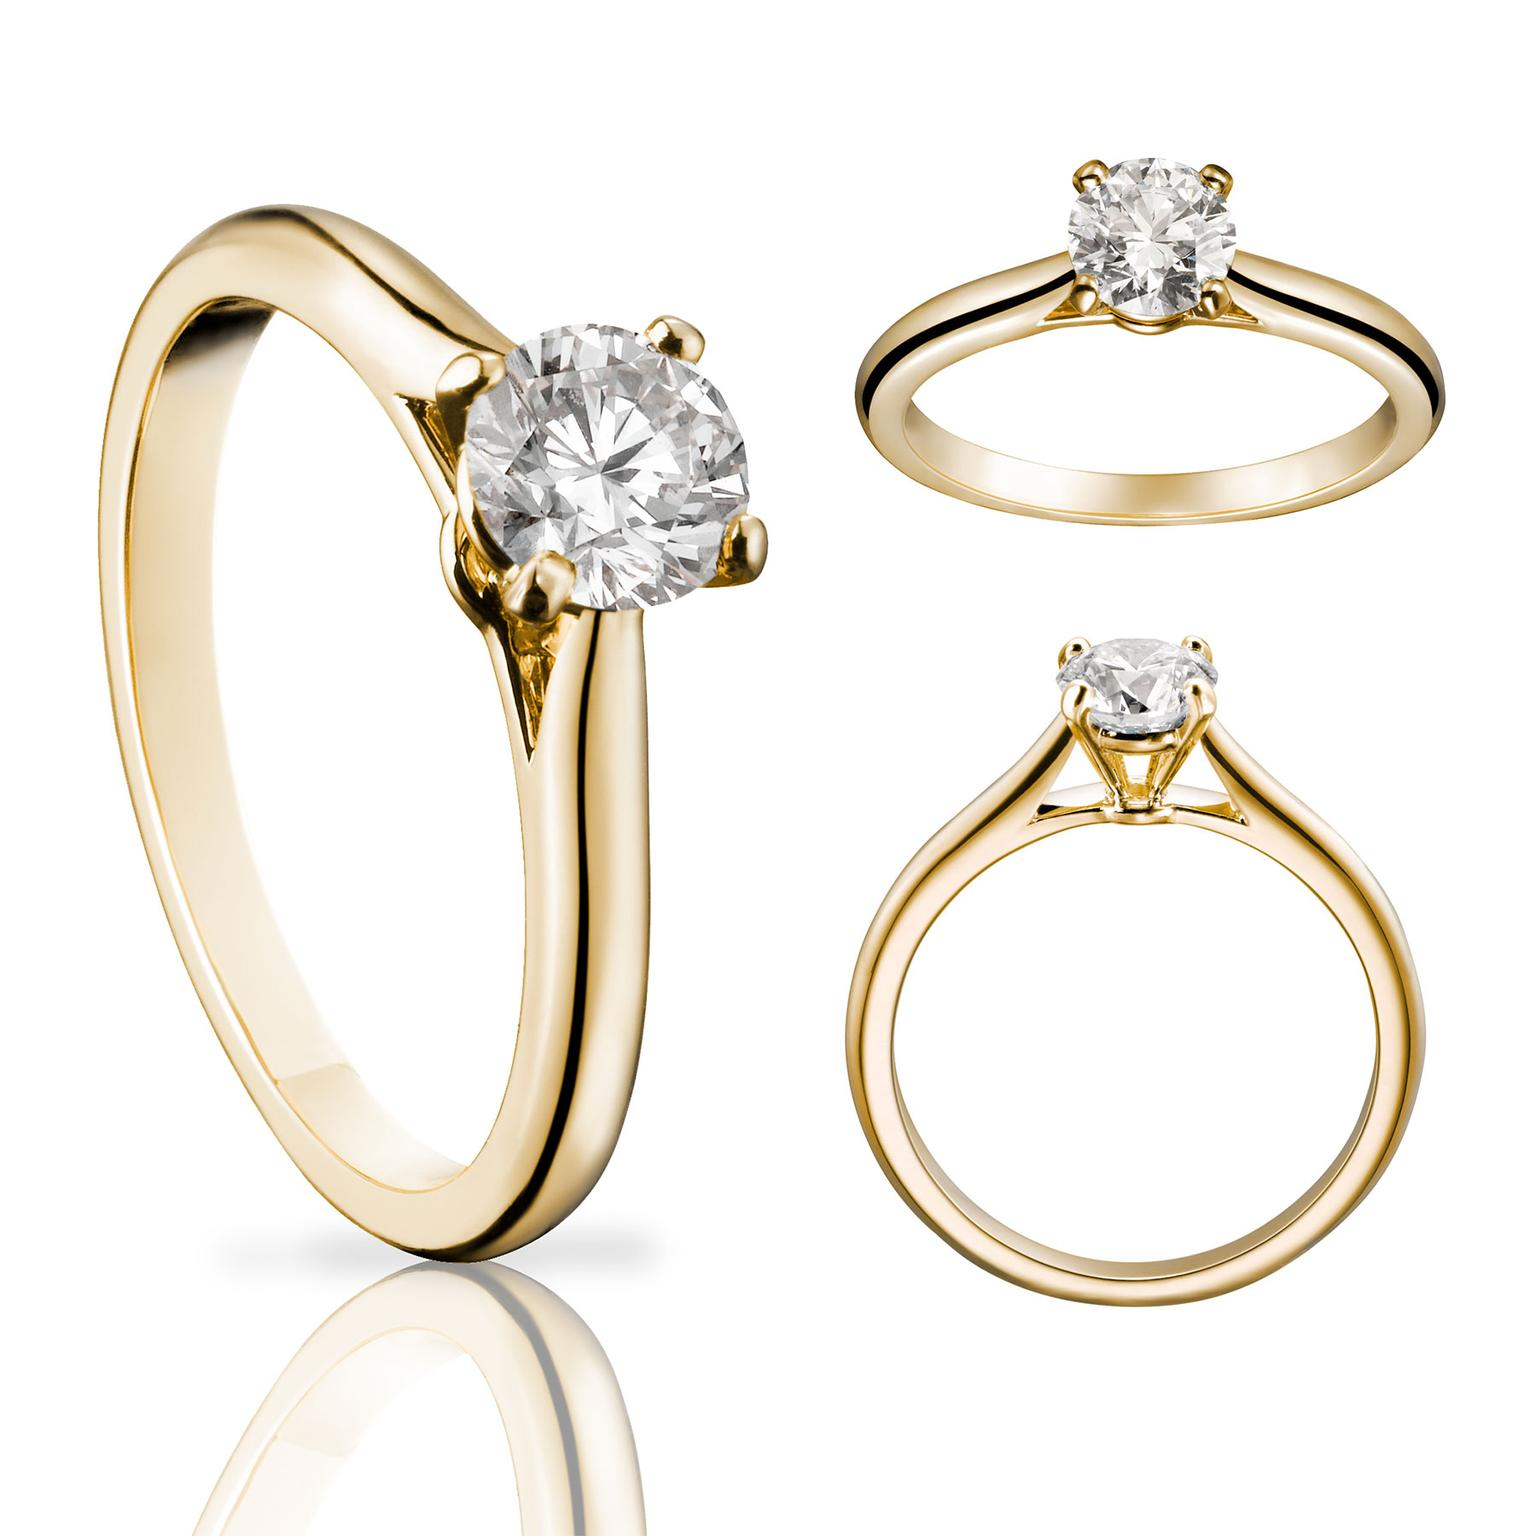 Solitaire 1895 Diamond Ring In Yellow Gold